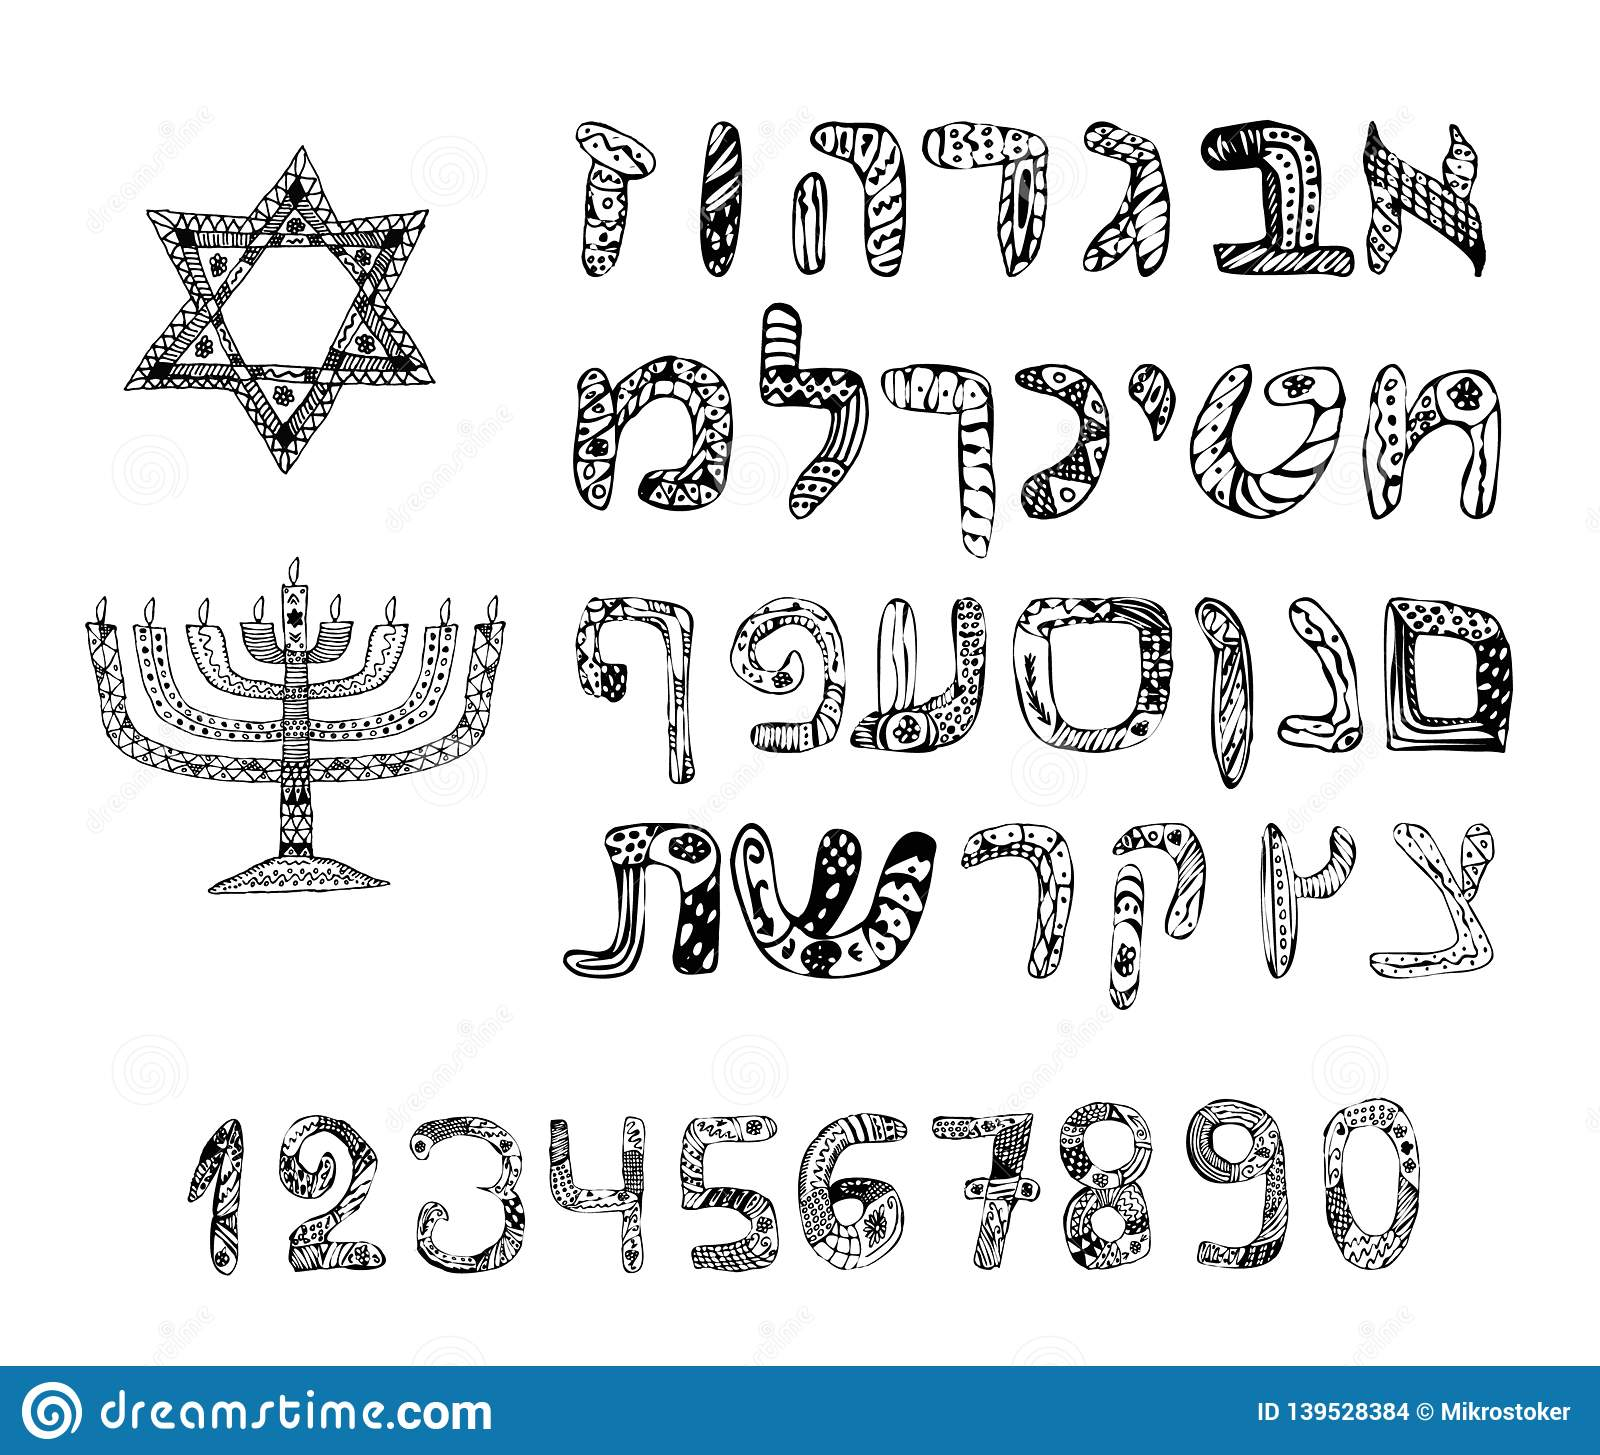 Doodle alphabet Hebrew. Font. Letters. Numbers. Hanukkah. Chanukah candle. The six-pointed Star of David. Sketch. Hand